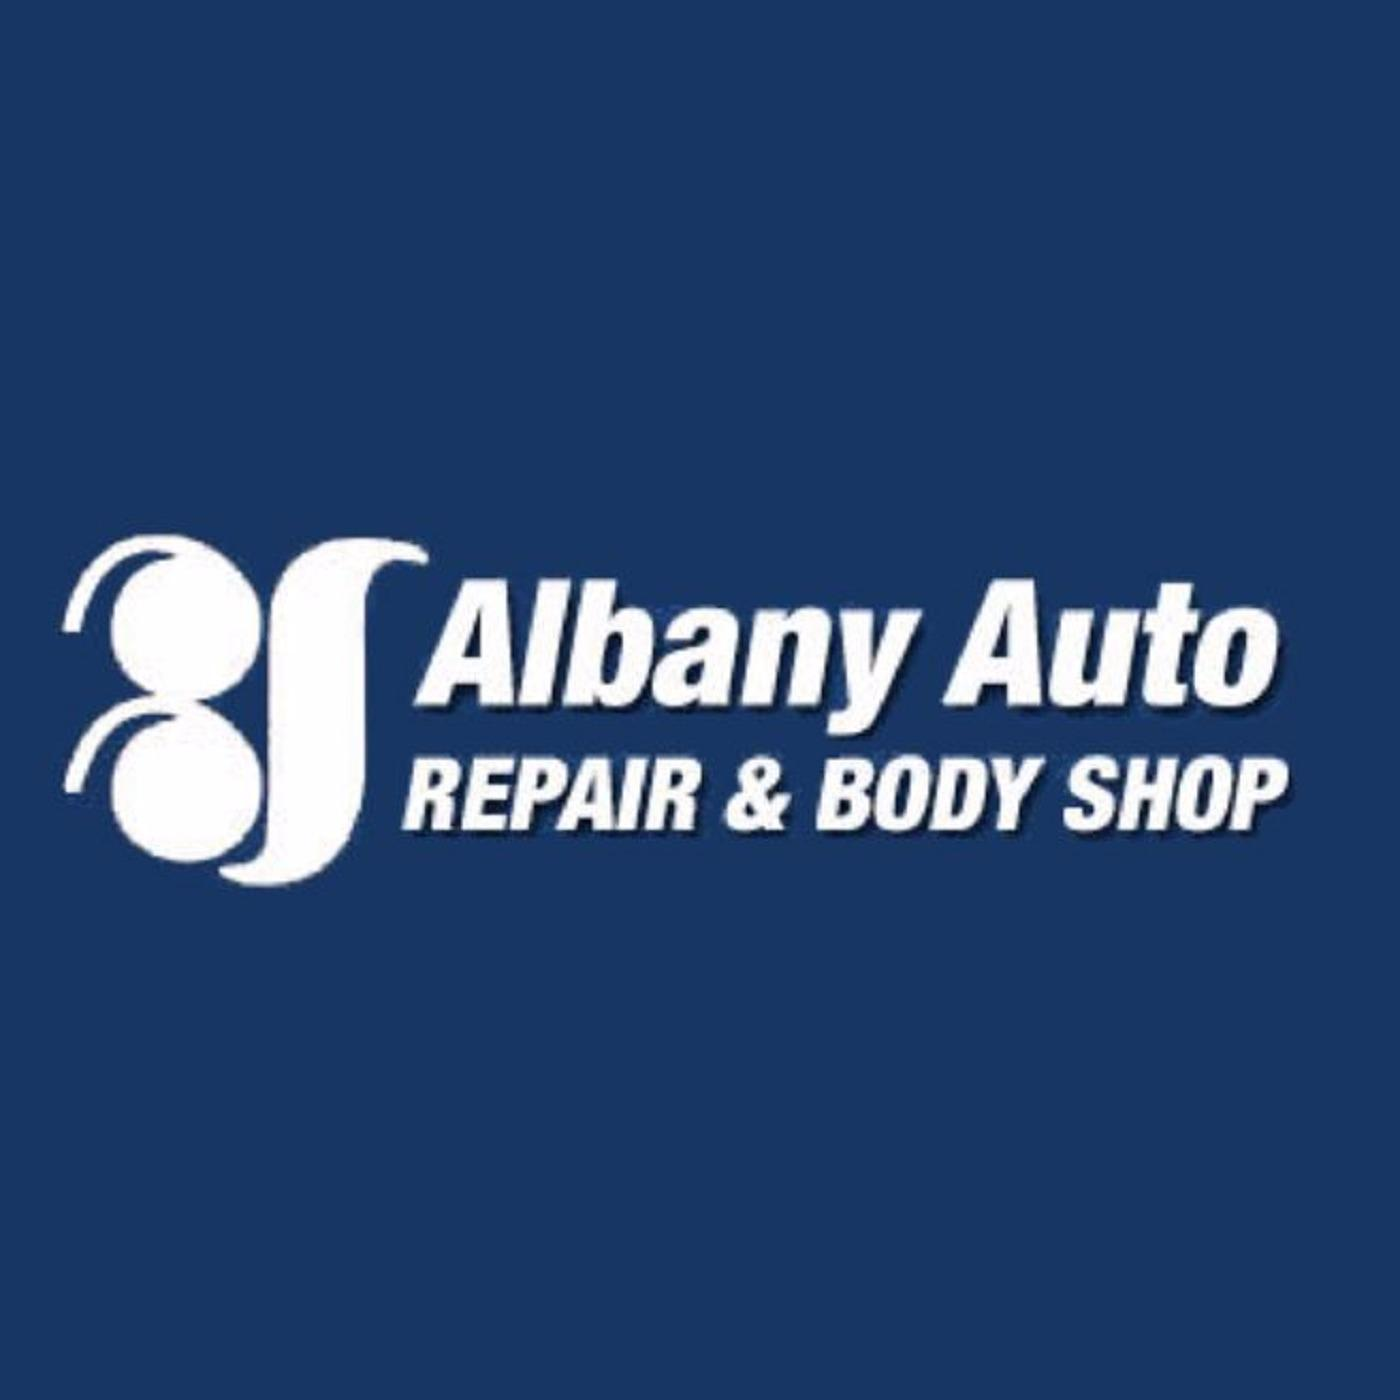 Albany Auto Repair & Auto Body